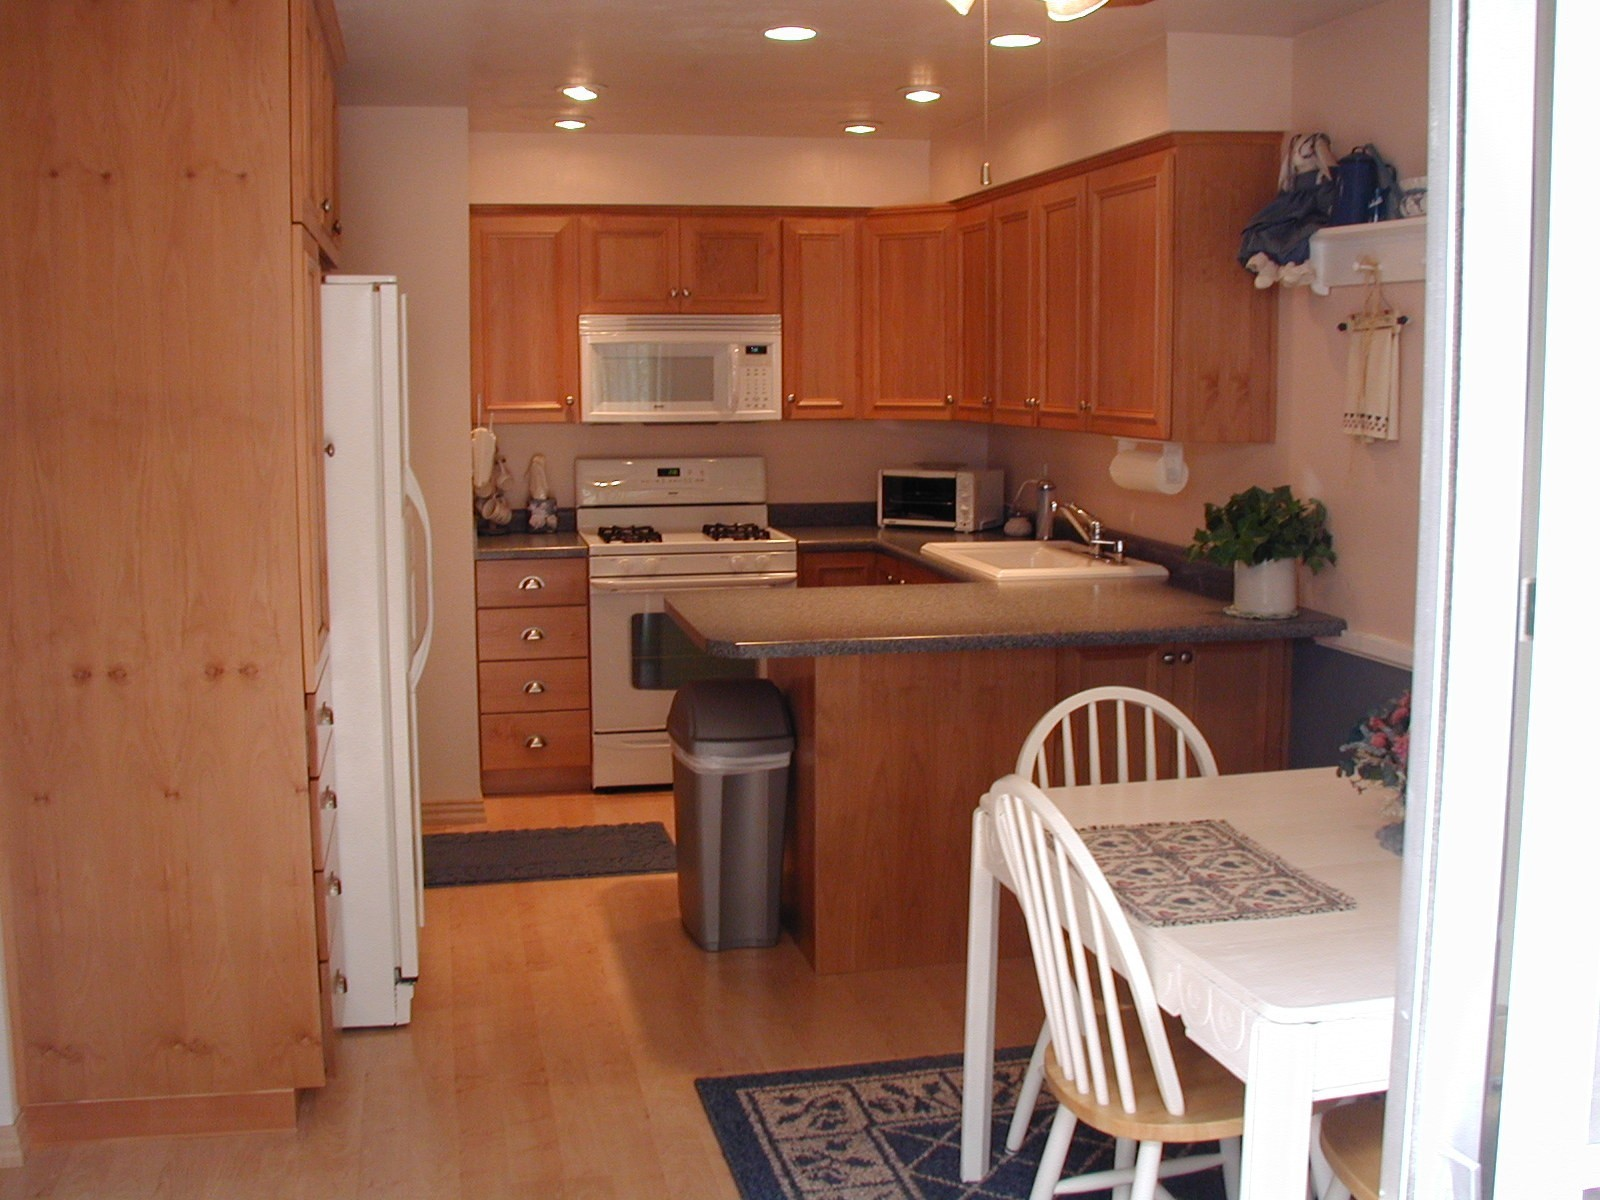 Wood Floor In The Kitchen Kitchen Cabinets Wood Floors Granite Home Depot Lowes House